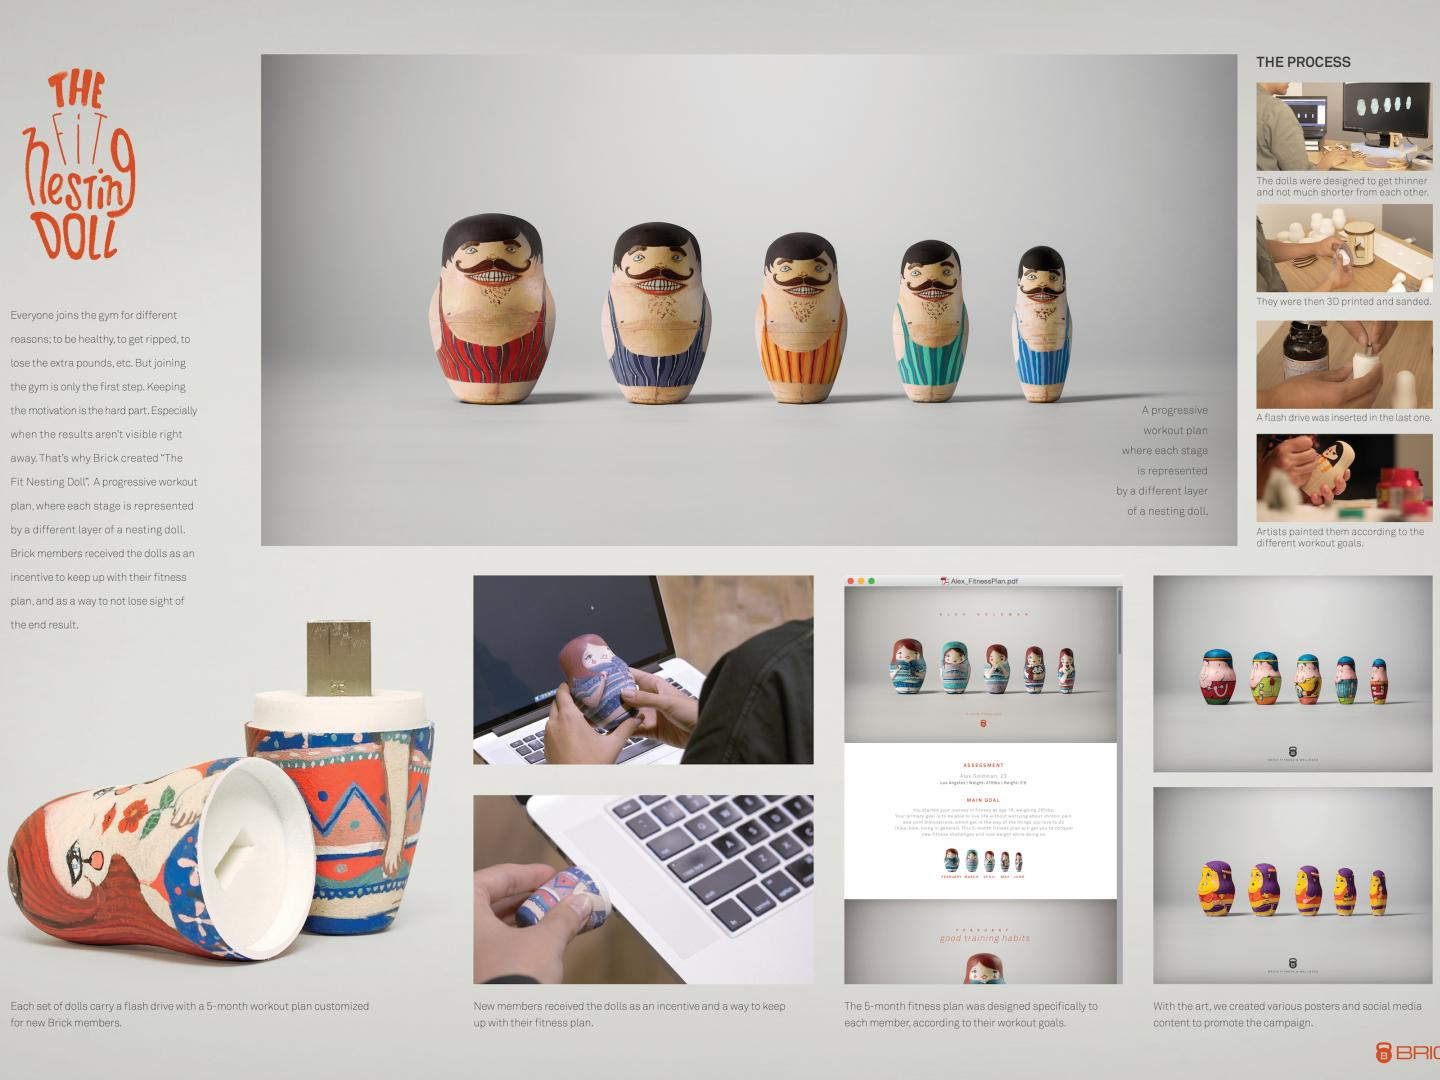 The Fit Nesting Doll Thumbnail